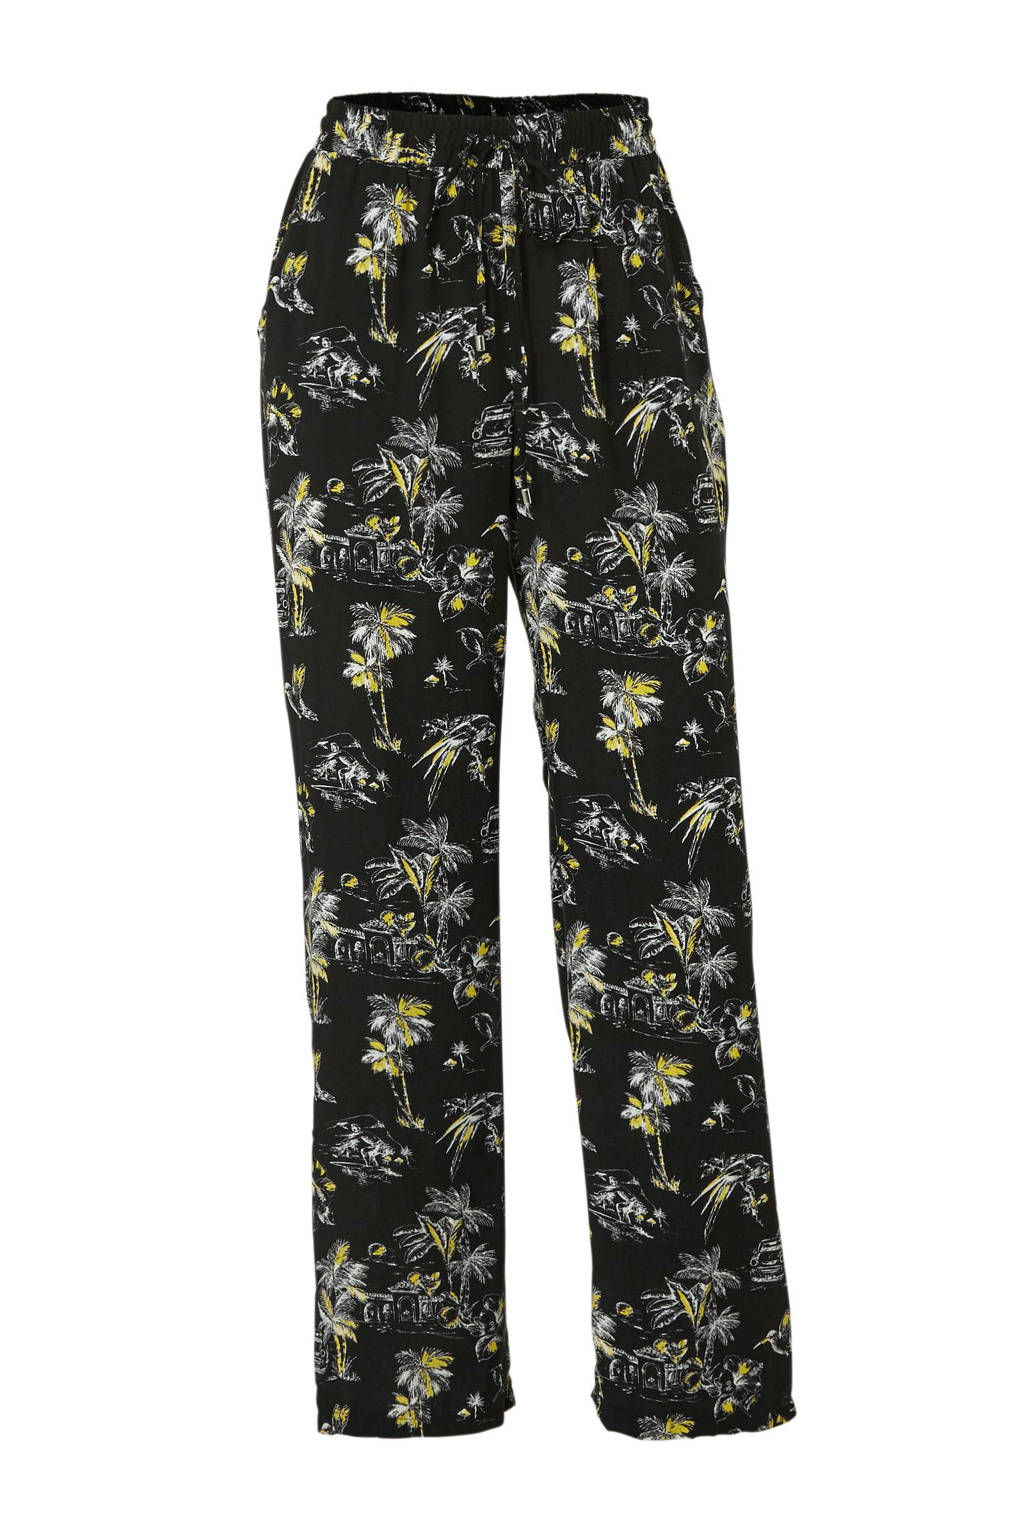 C&A Yessica straight fit broek met all over print zwart, Zwart